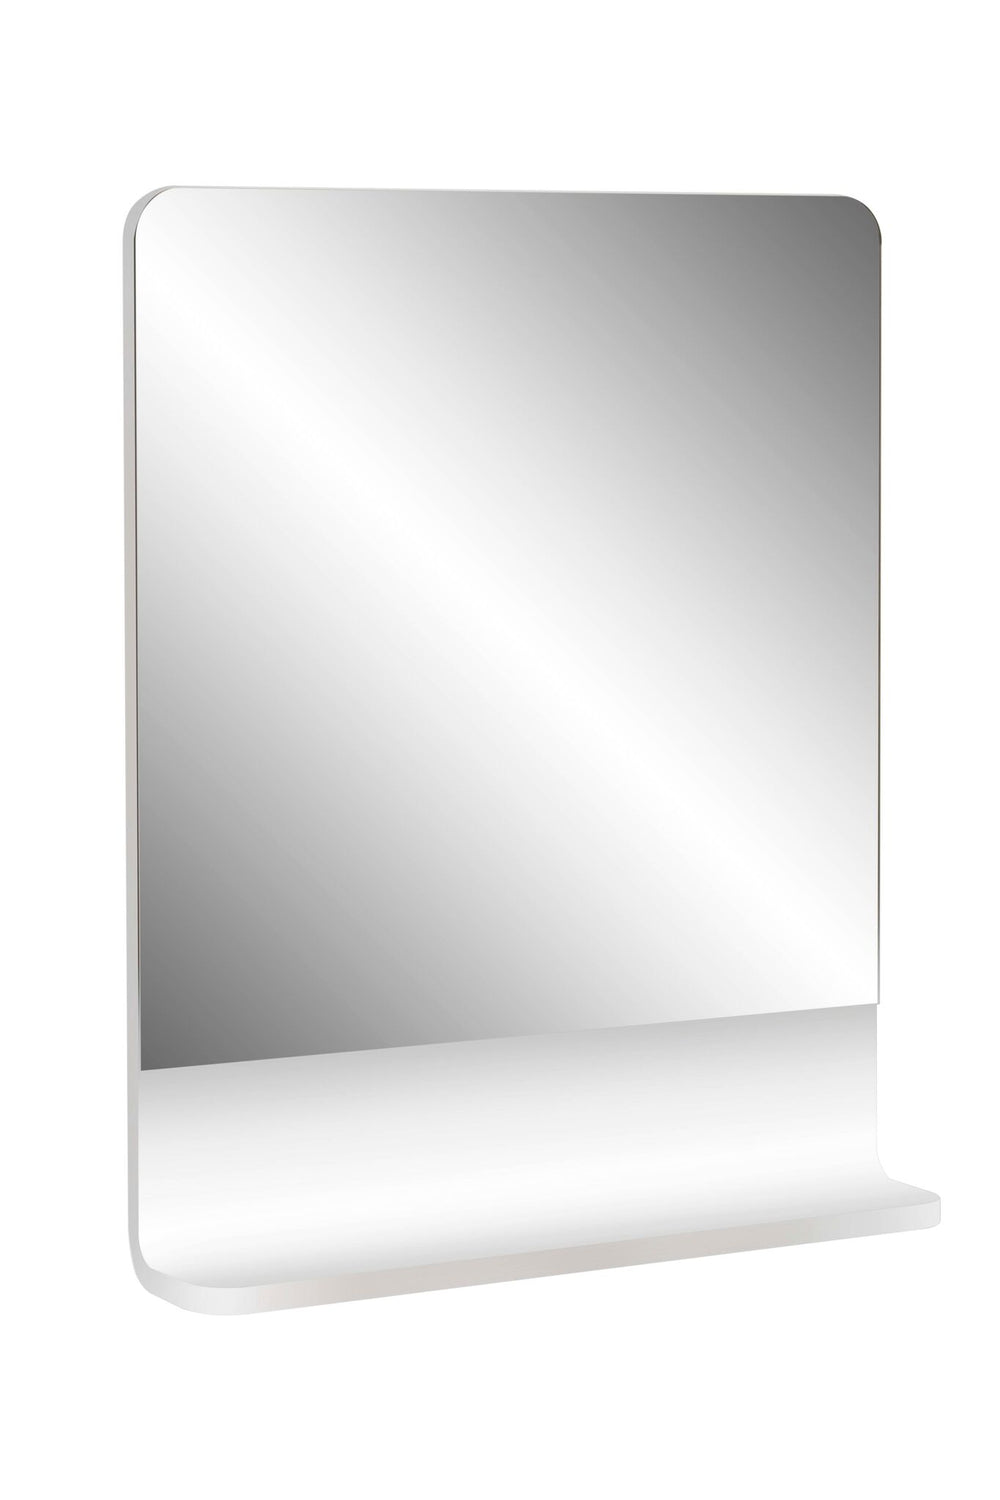 Cara 600 Mirror Shelf WHITE